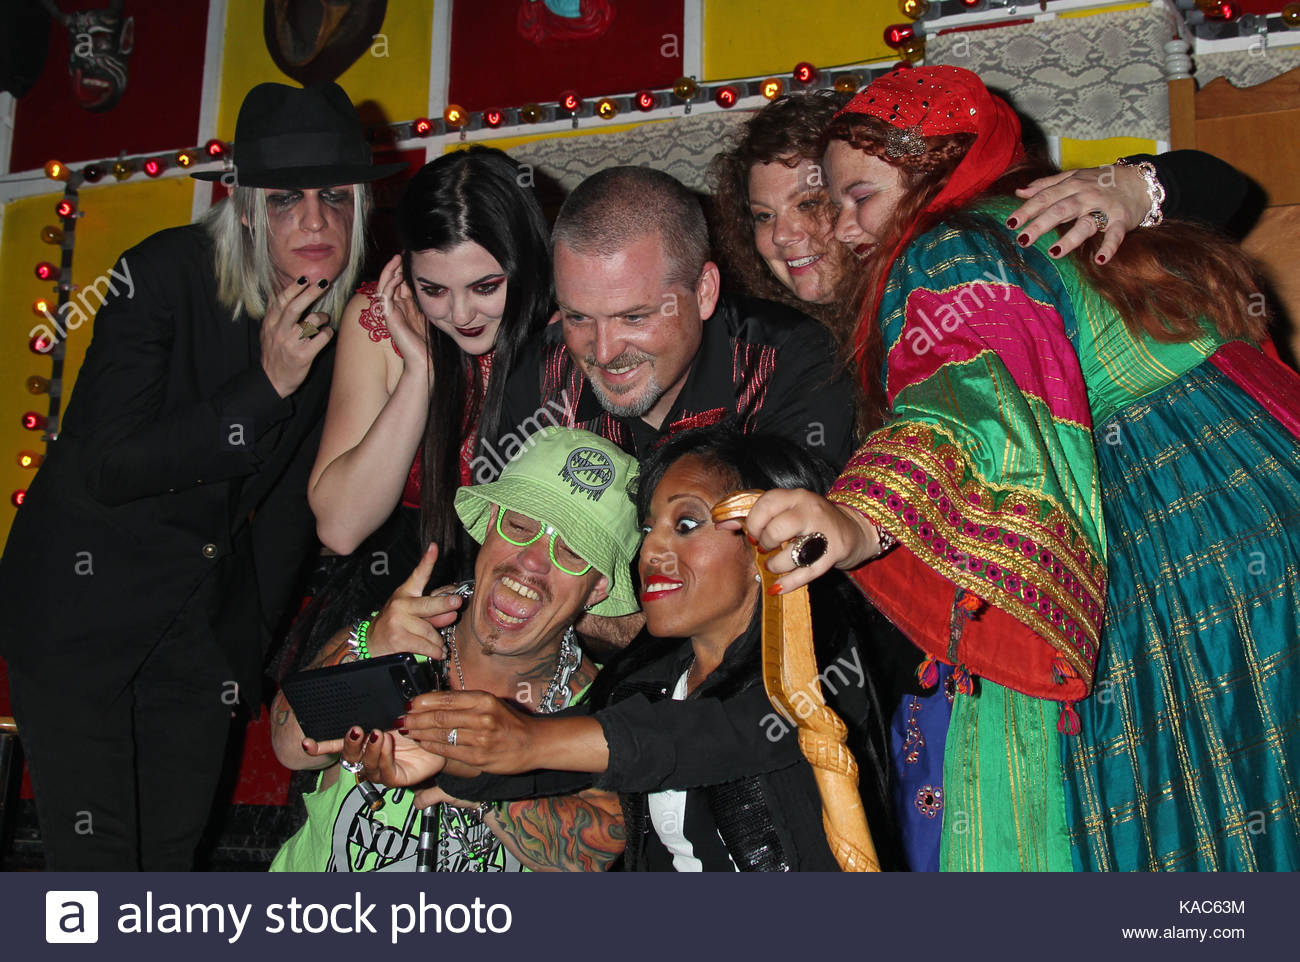 Morgue and asia from freakshow dating games